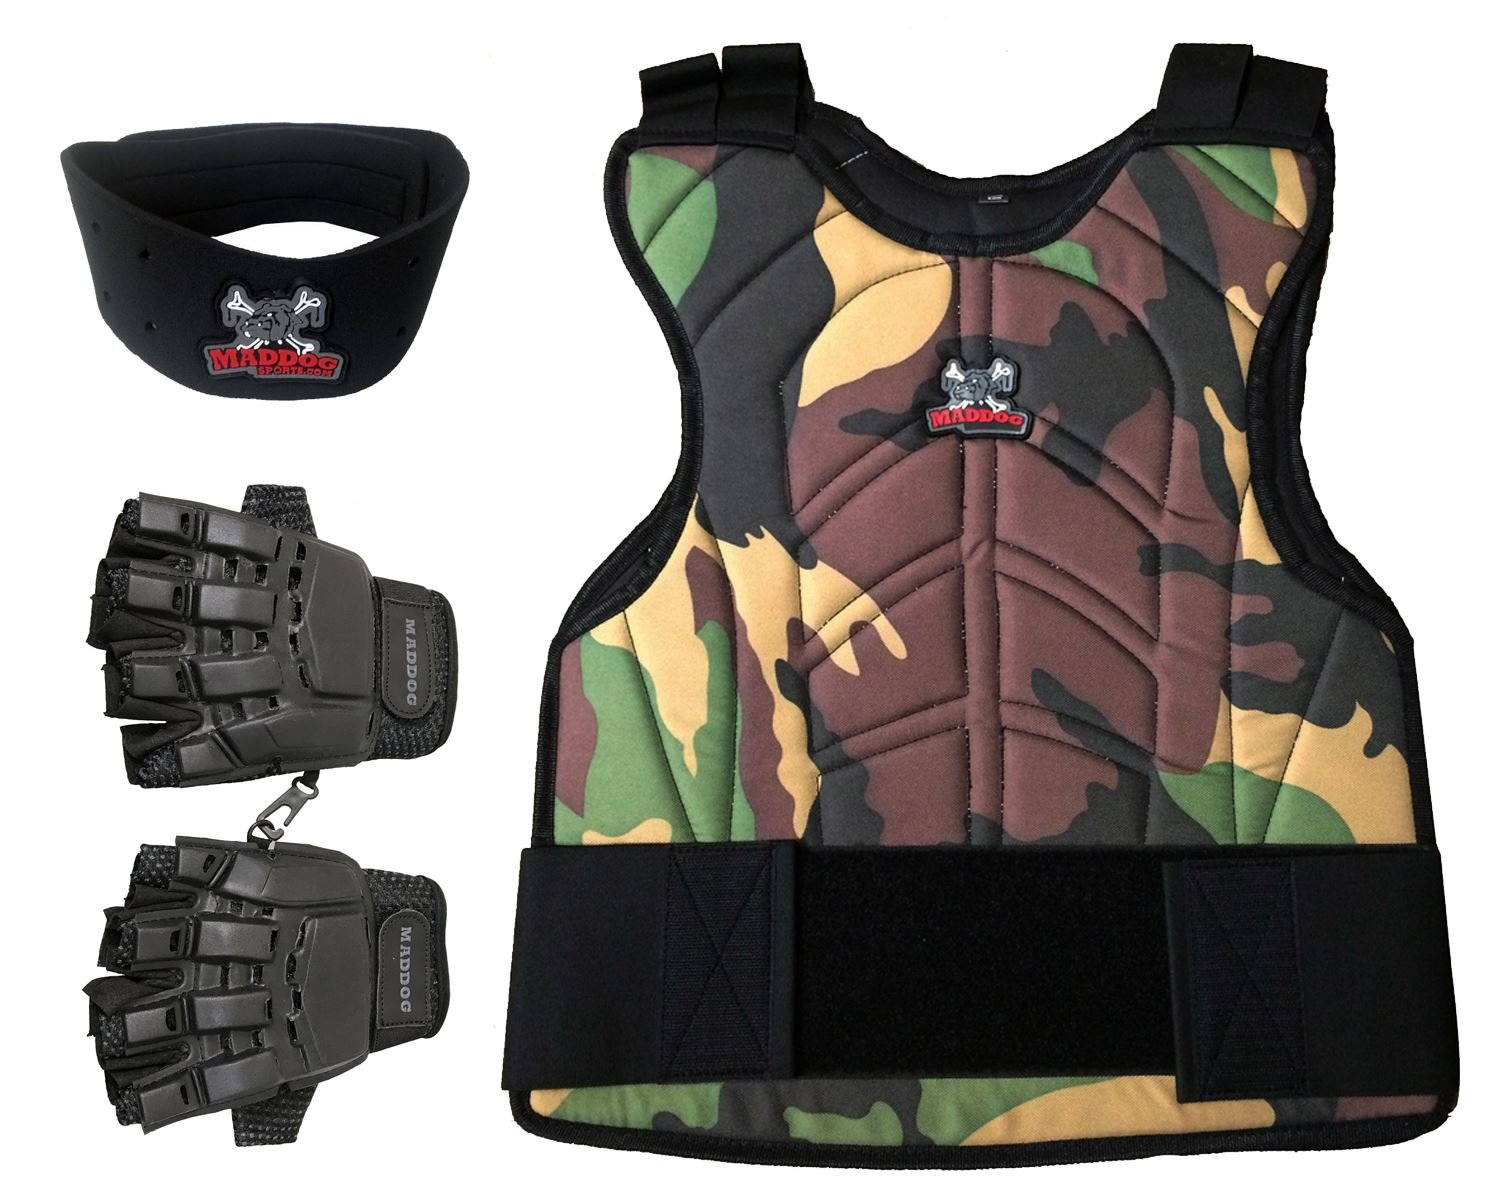 MAddog Padded Chest Protector Combo Package - Camo - Small/Medium